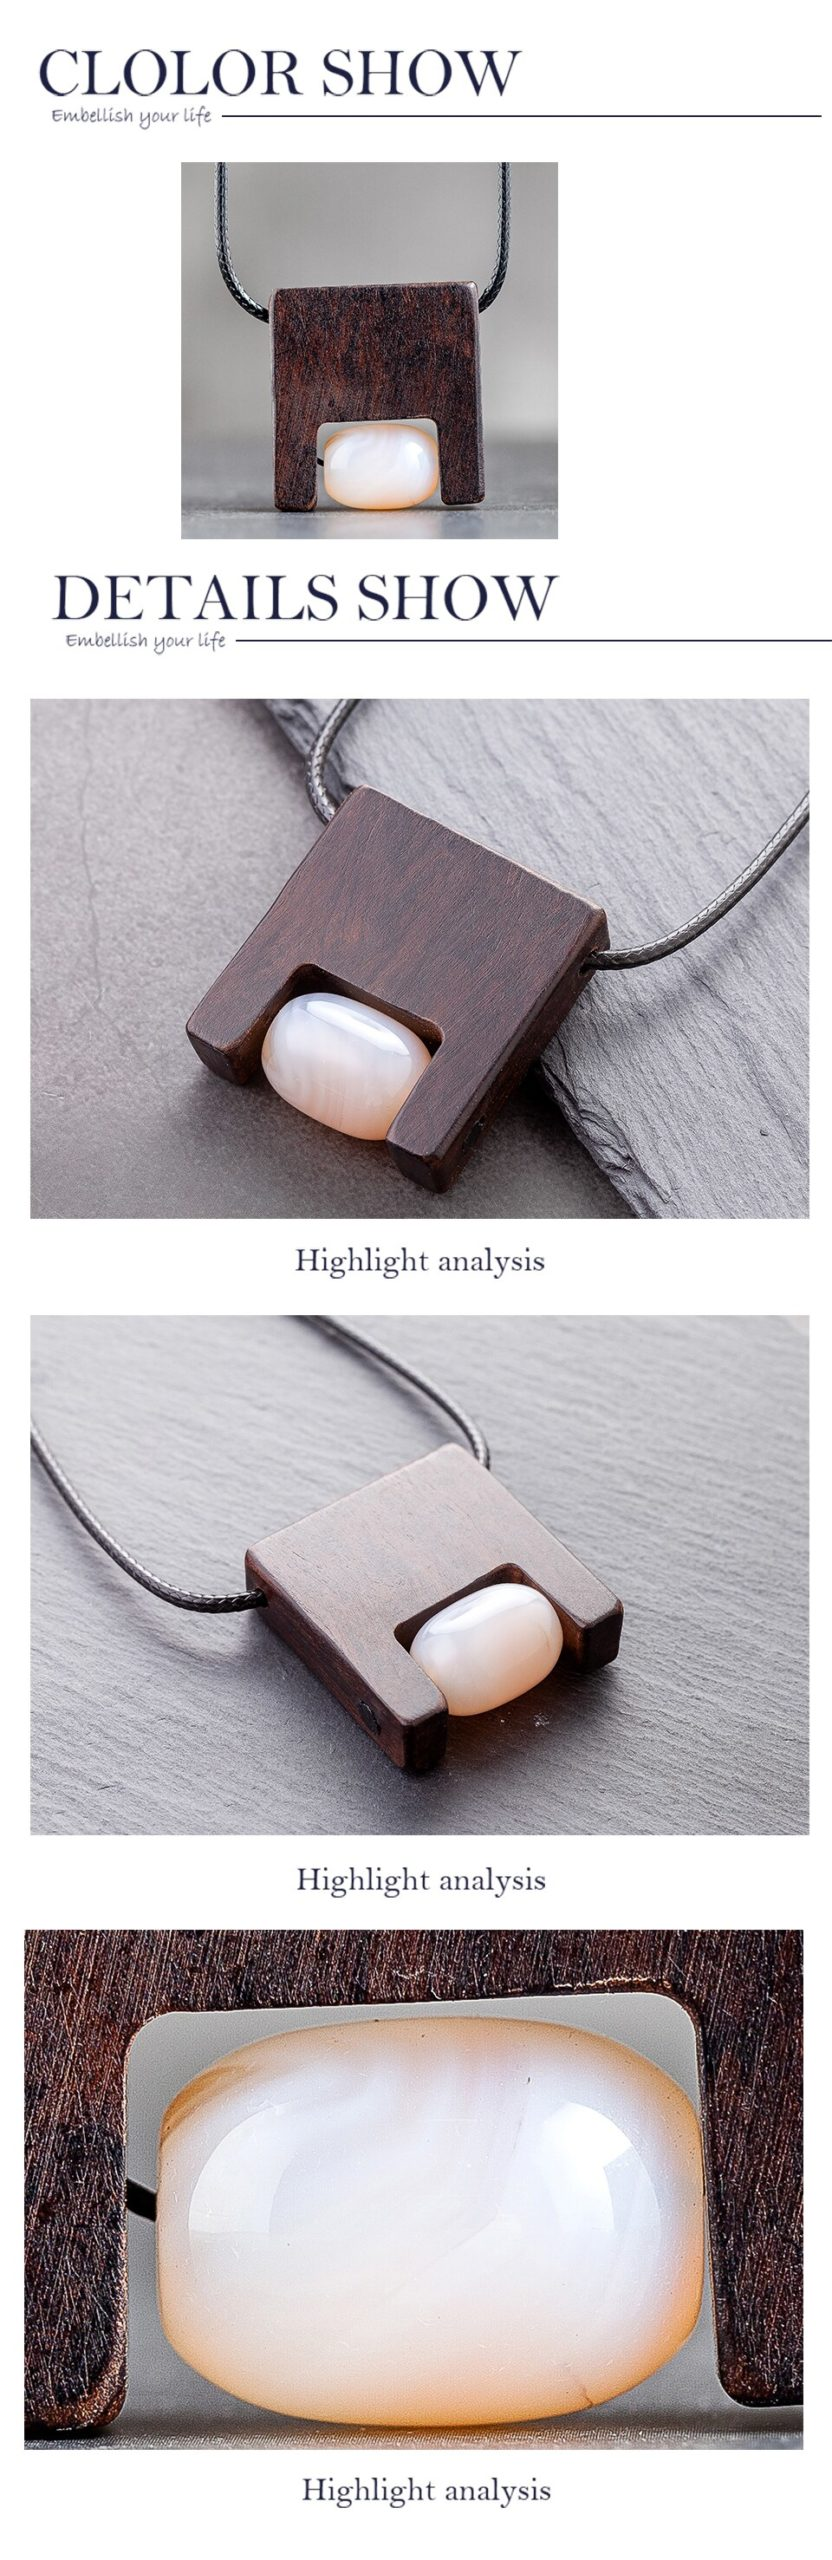 Geometric Nature Stone Women's Pendant Jewellery Vintage Celebrity Collar Neckless Long Necklace for Grandmother's Day Gifts Mom